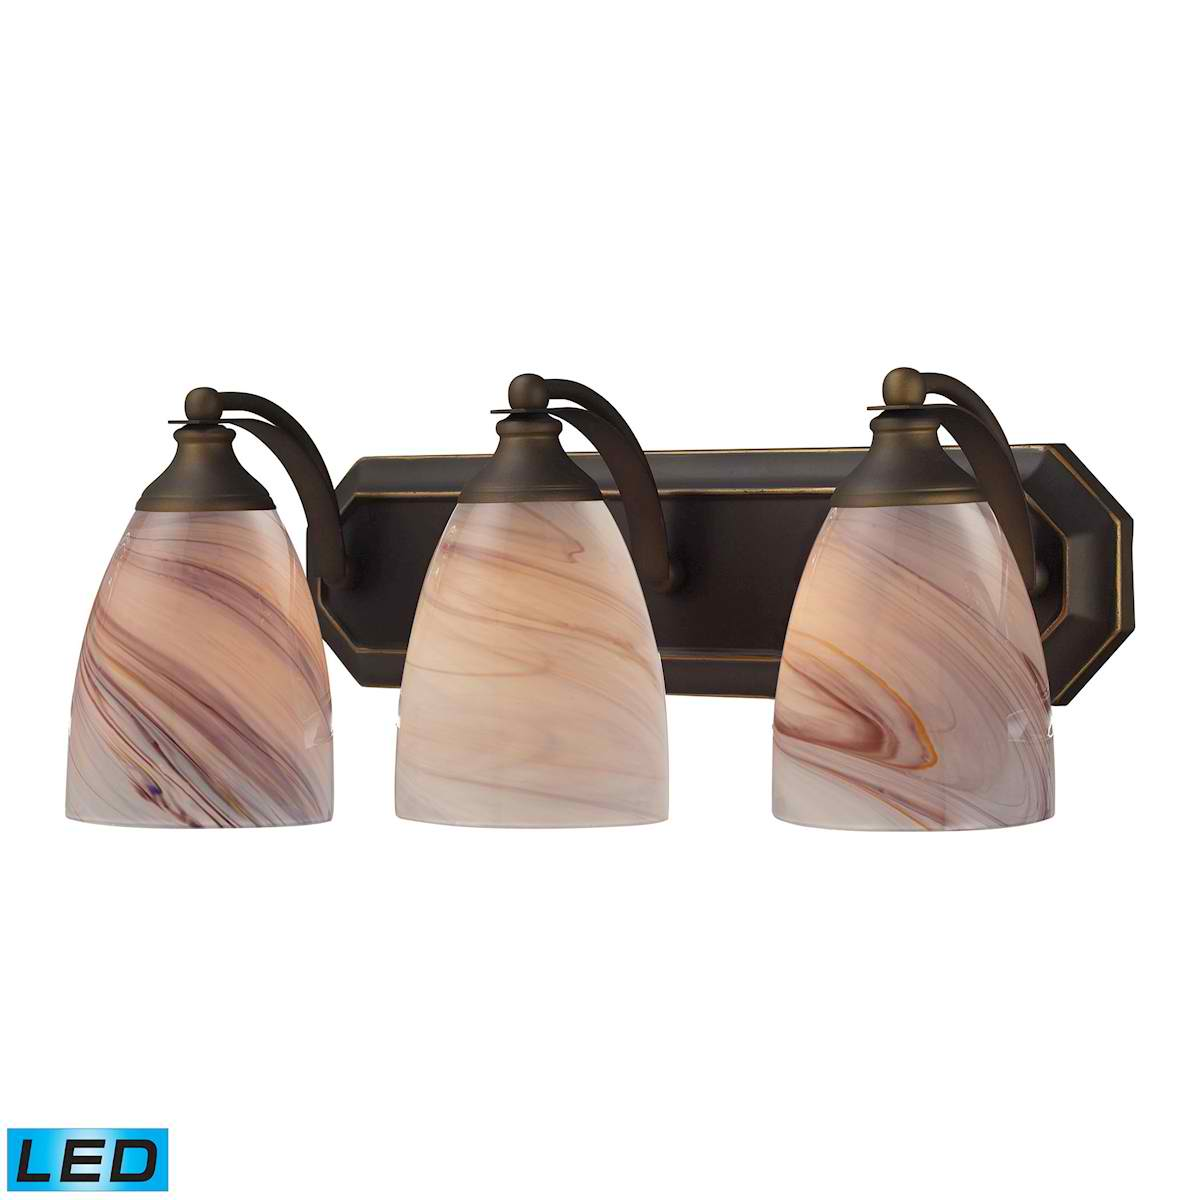 3 Light Vanity in Aged Bronze and Creme Glass - LED, 800 Lumens (2400 Lumens Total) with Full Scale